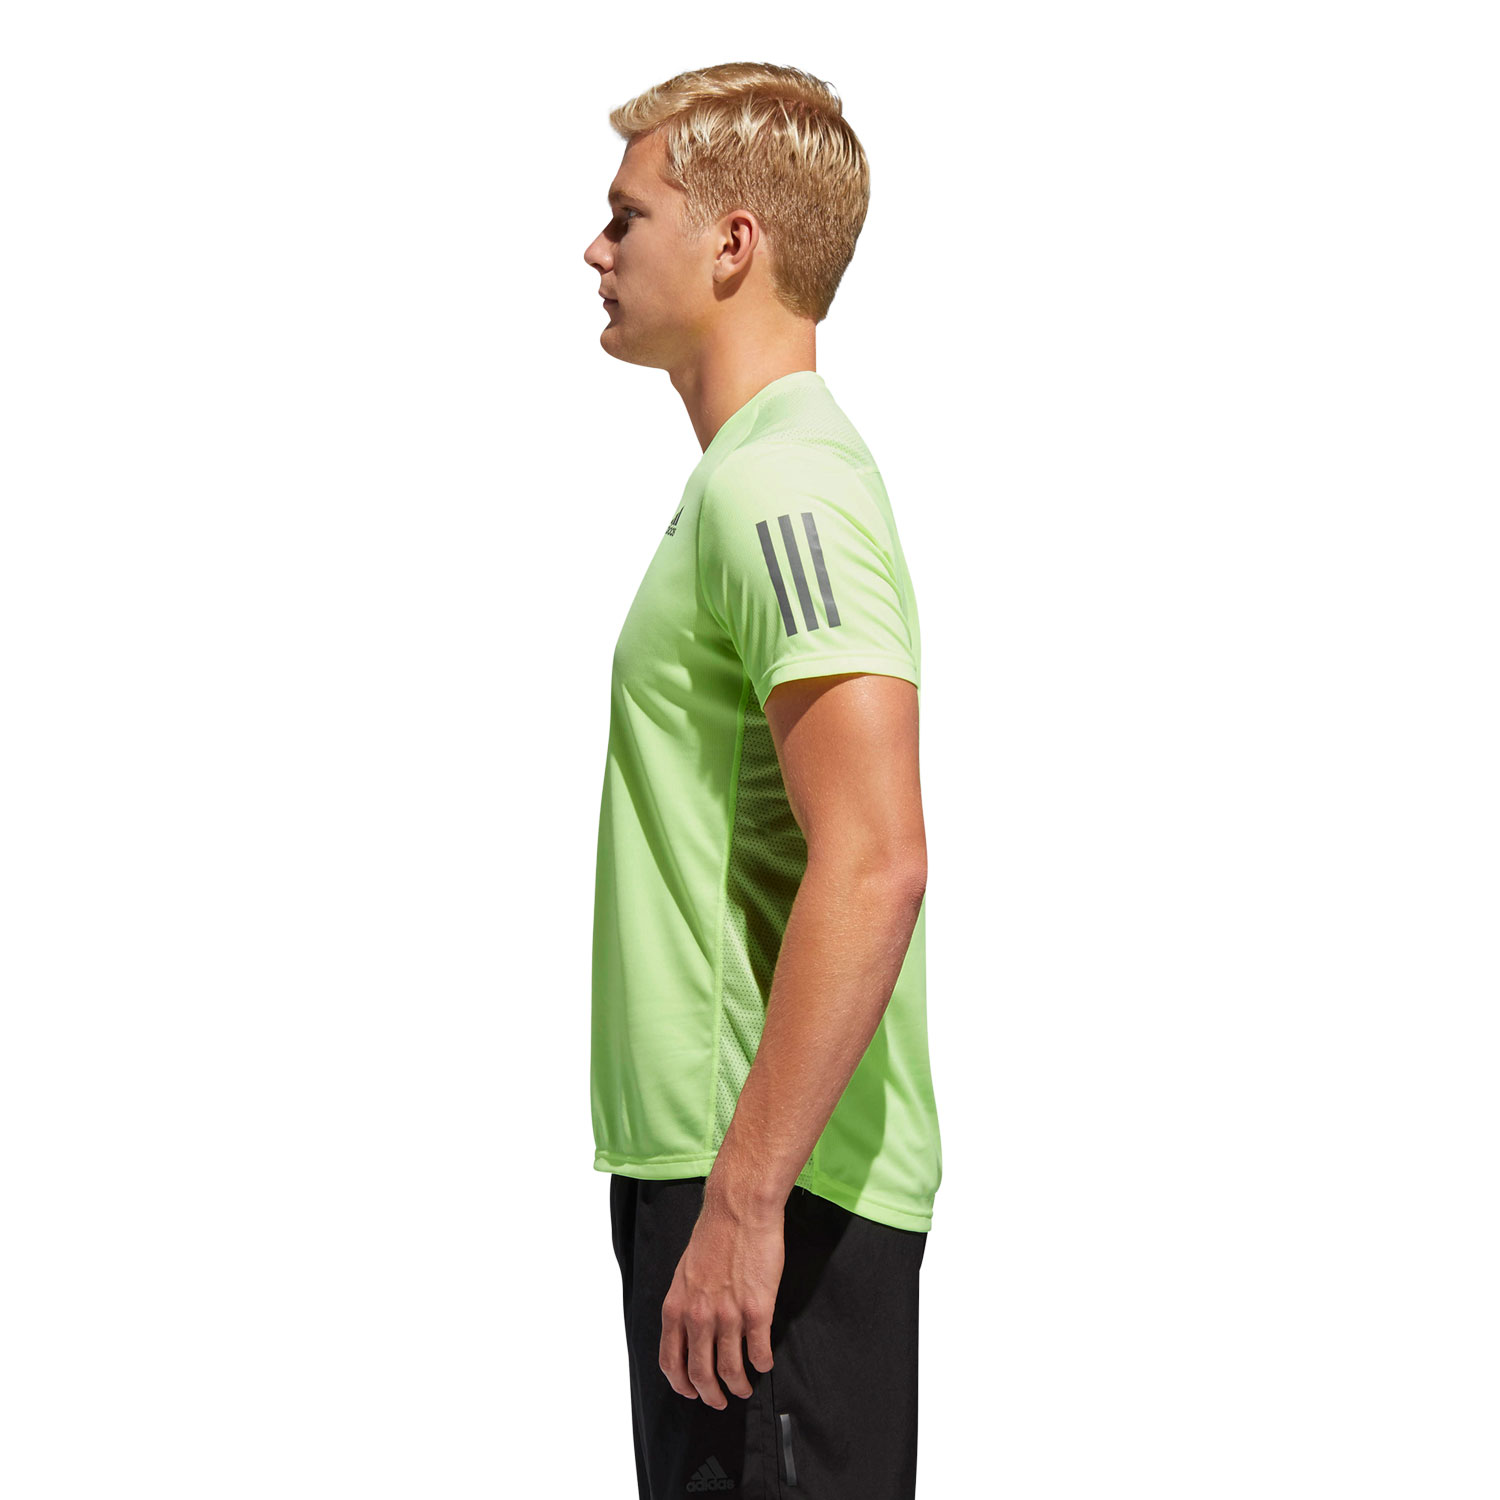 Adidas Own the Run Herren Laufshirt – Bild 4